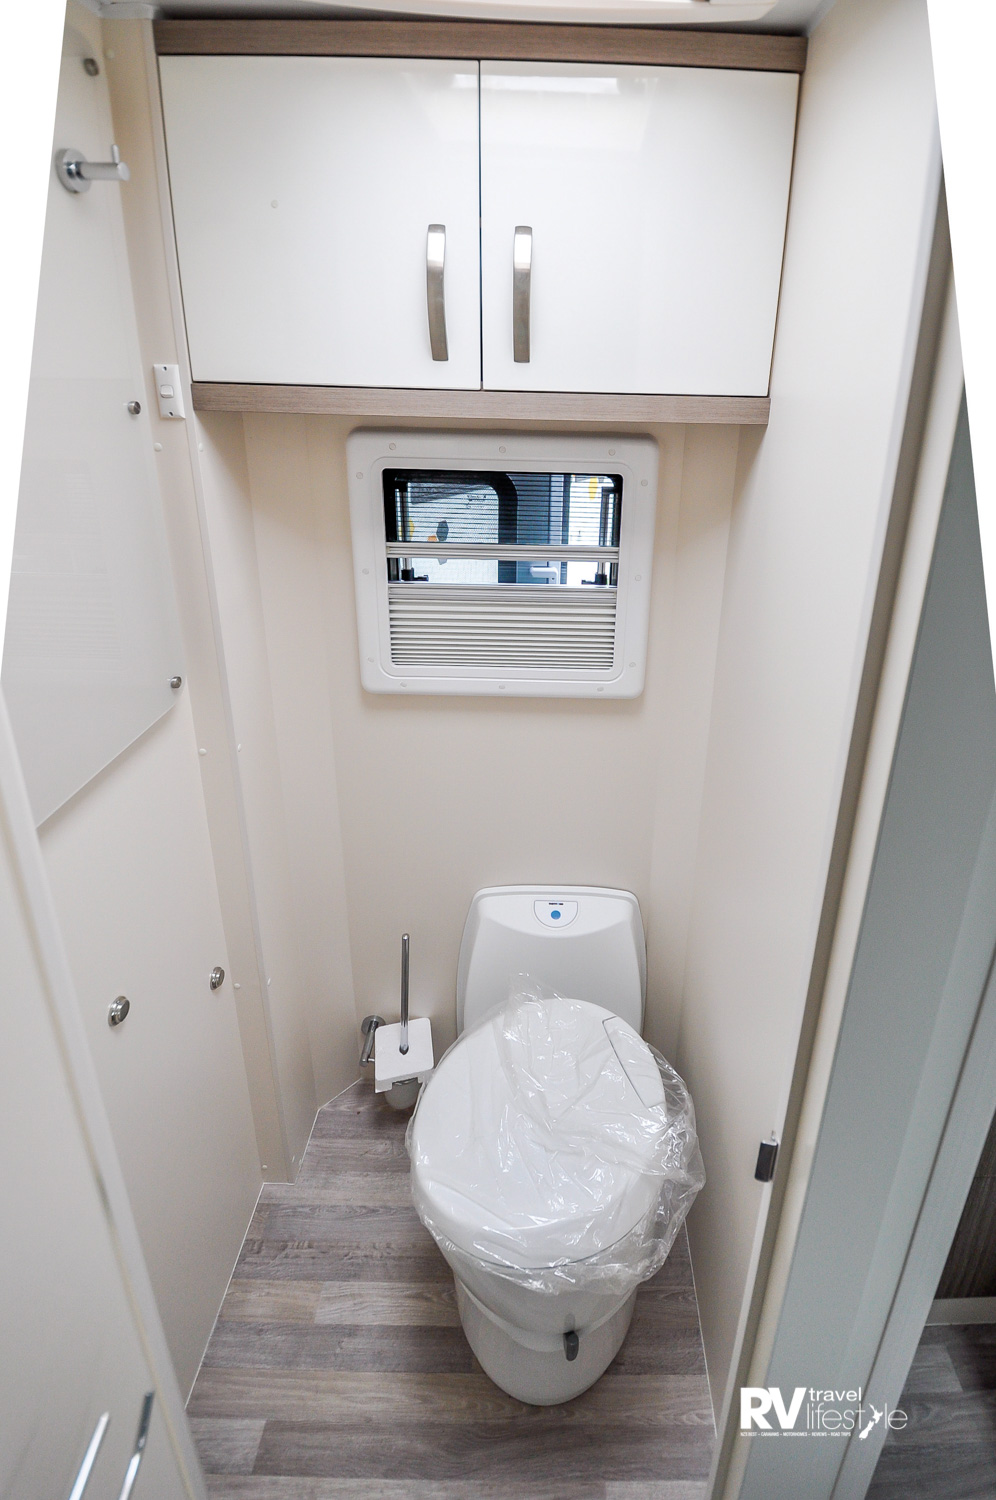 The ensuite toilet area is a great size, with a window and a vent for light and airflow – plenty of storage options in here as well